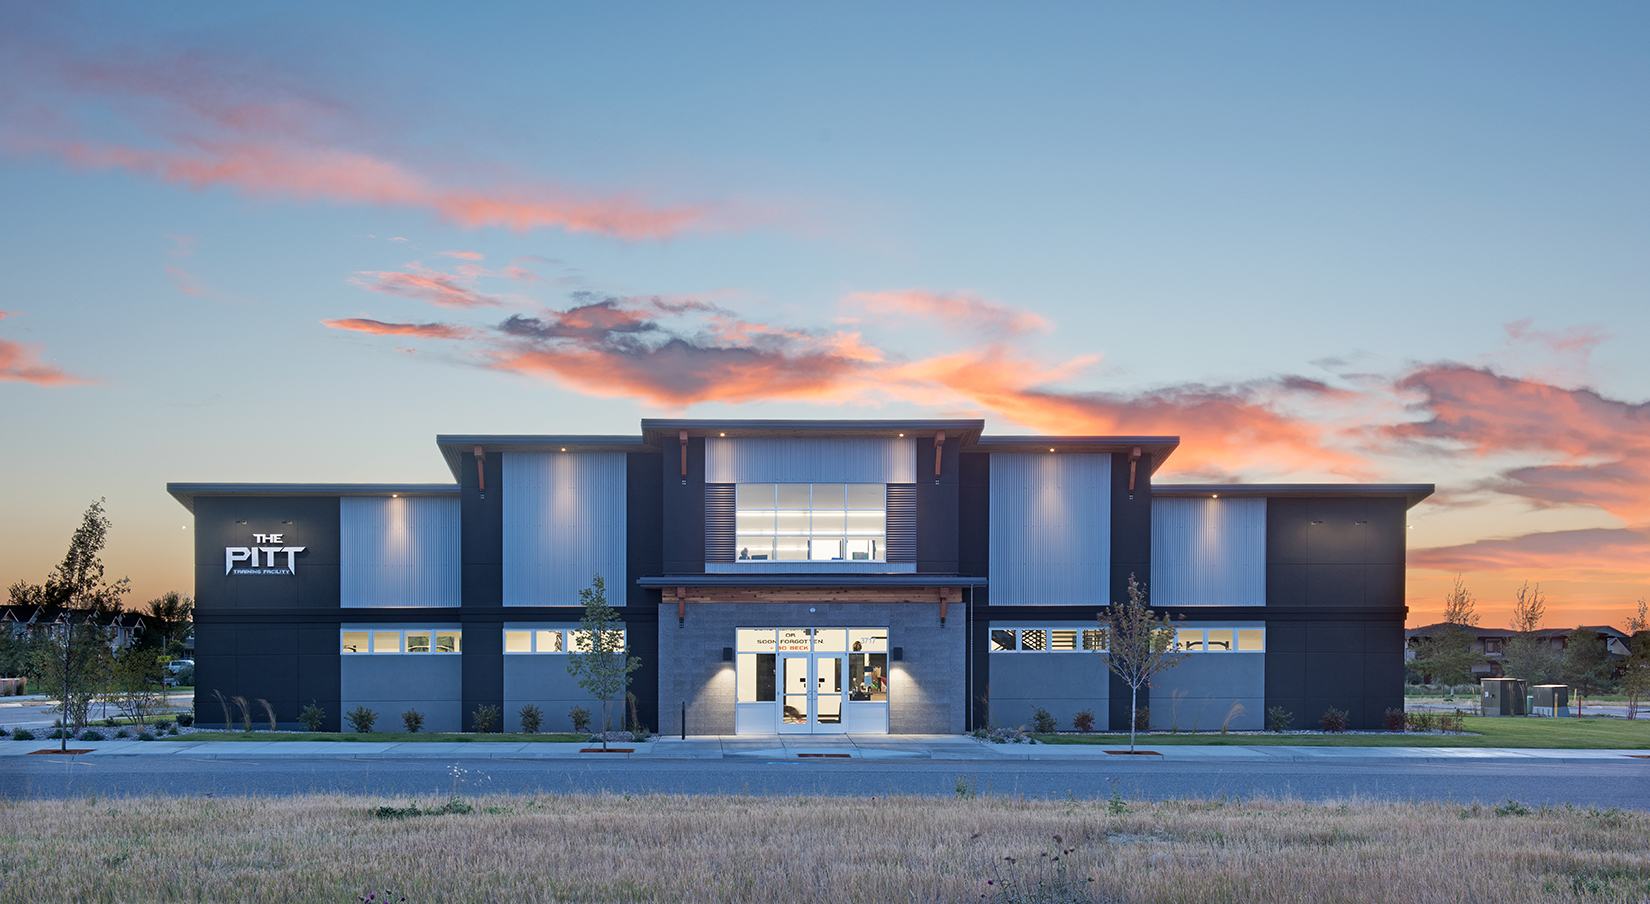 We had a killer sunset while shooting The Pitt Training Facility for  NE45 Architecture  in Bozeman.